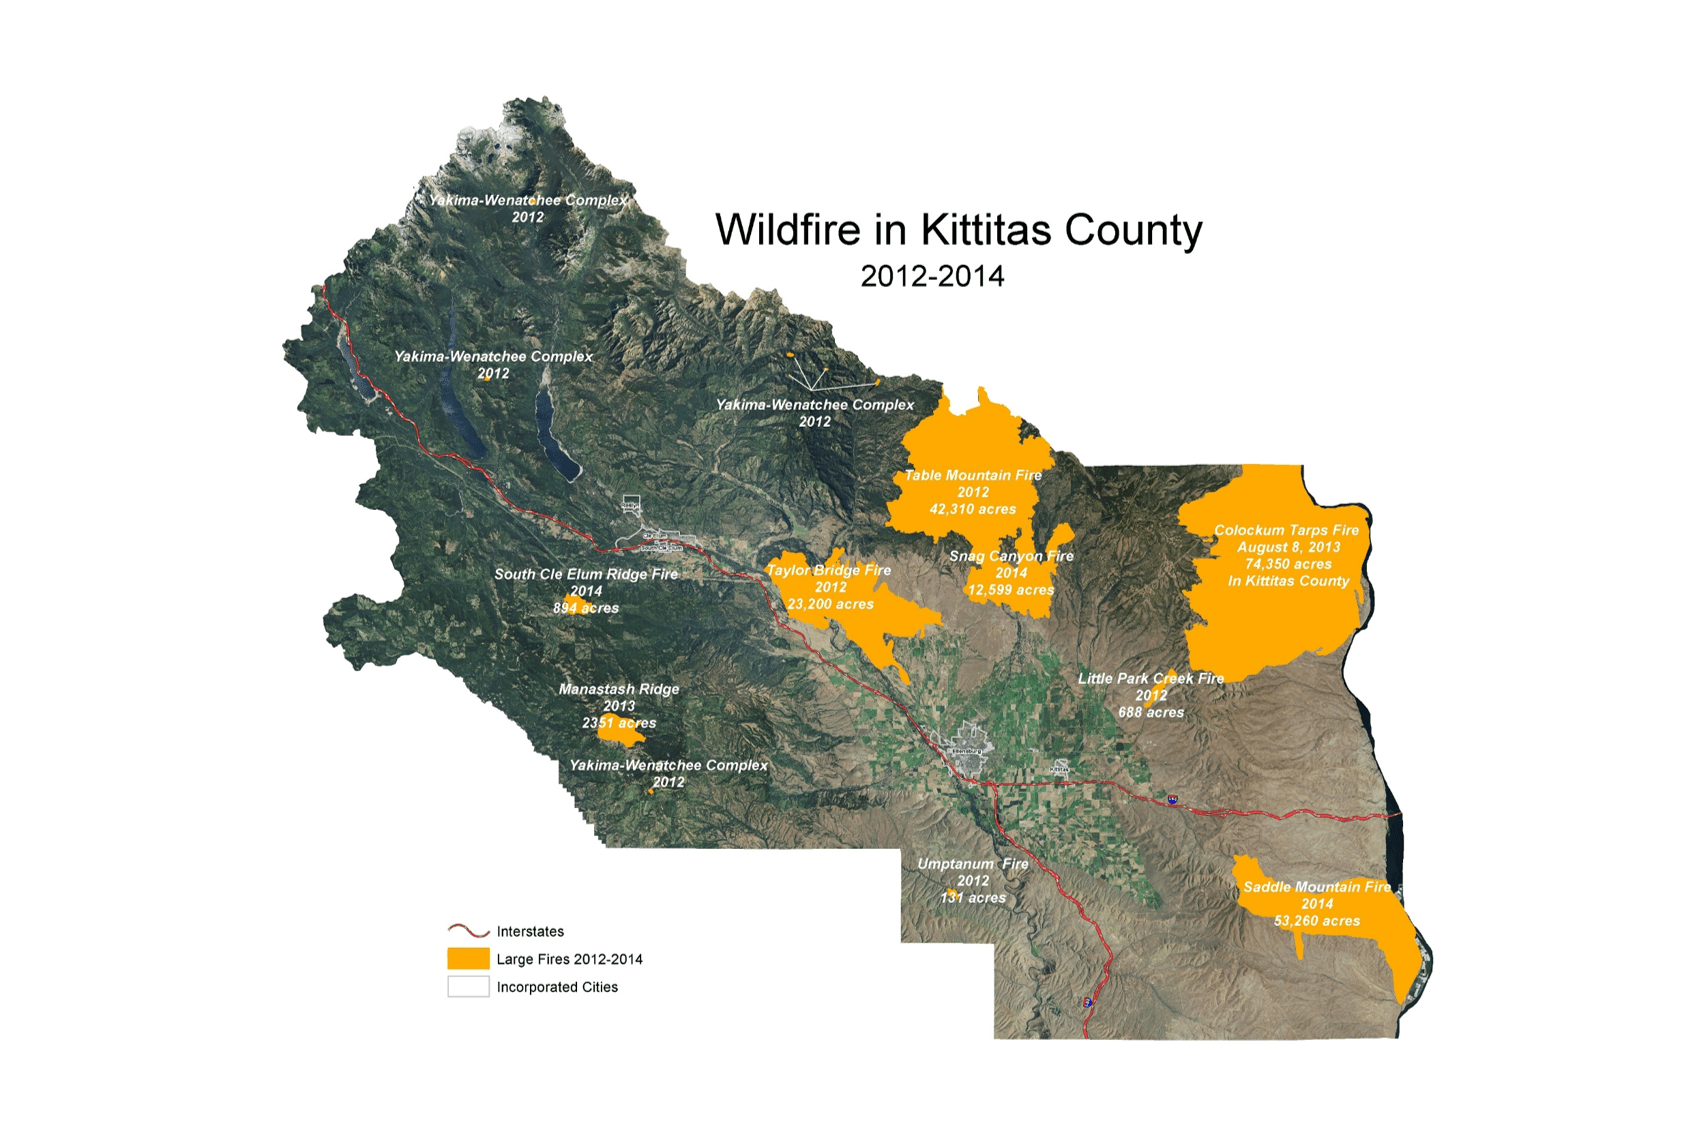 A map of Kittitas County's 2012-2014 wildfires.